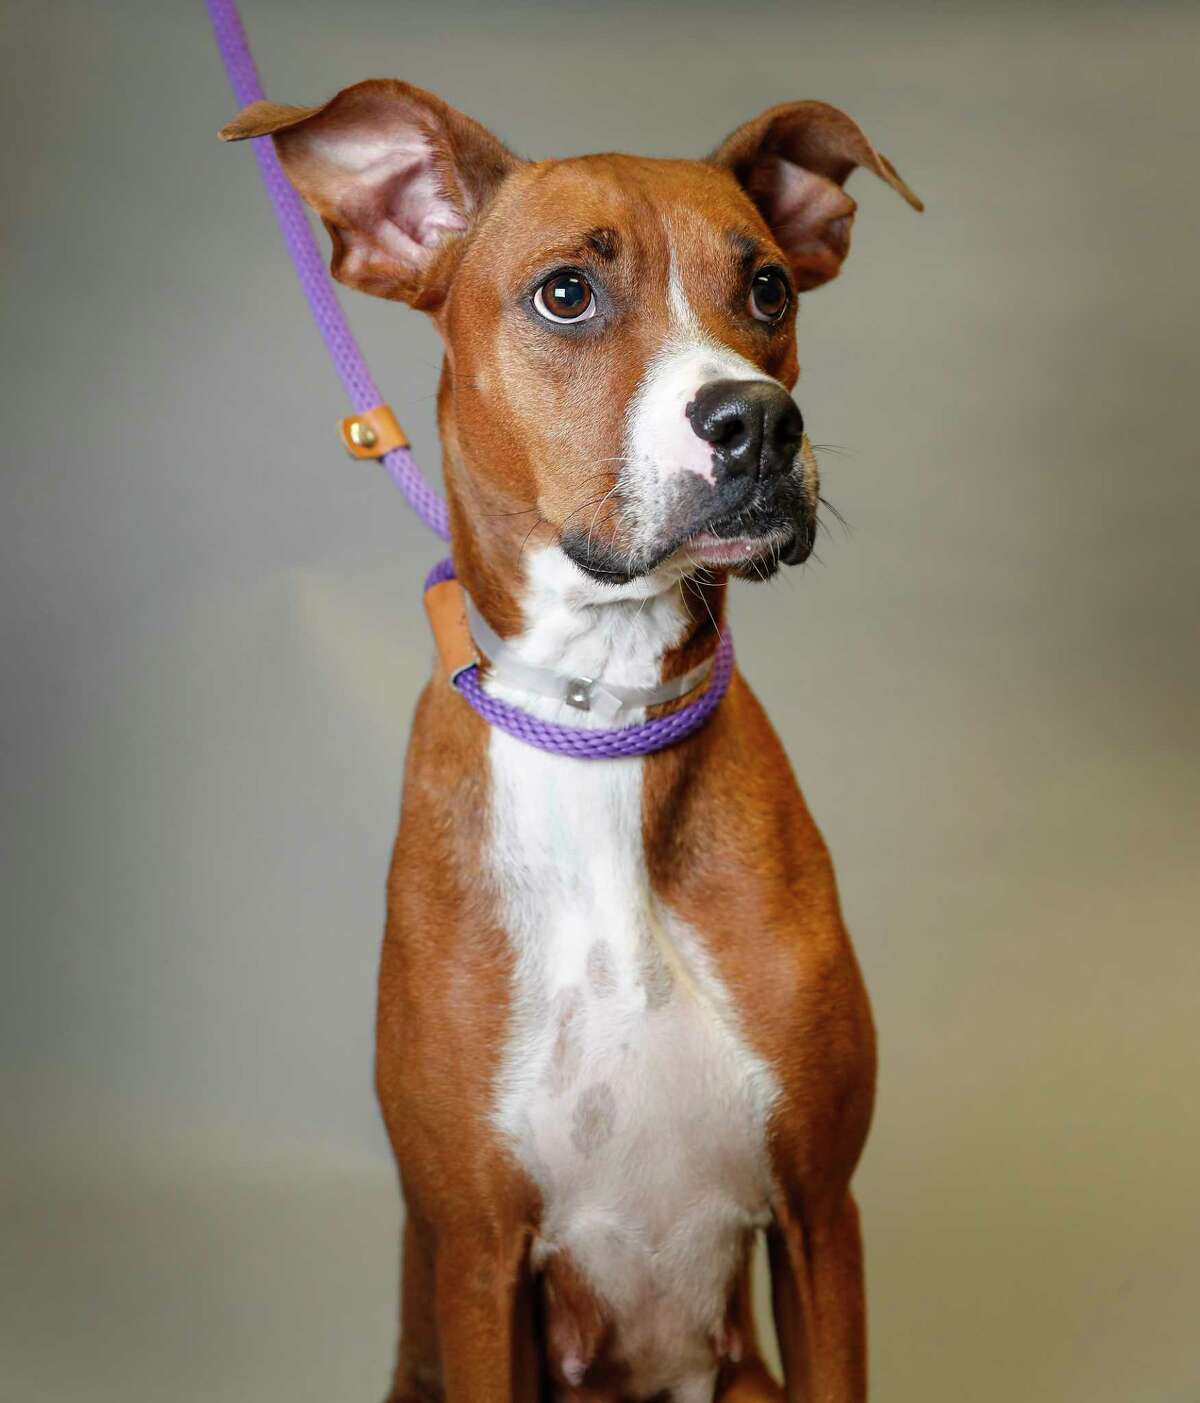 Tesla is a 4-year-old, female, red Rhodesian Ridgeback mix available for adoption at the Montgomery County Animal Shelter, in Conroe. (Animal ID: A321774) Photographed Tuesday, August 27, 2019. Tesla came into the shelter as a pregant mama in July. All of her puppies were adopted out, and now she's looking for a forever home.